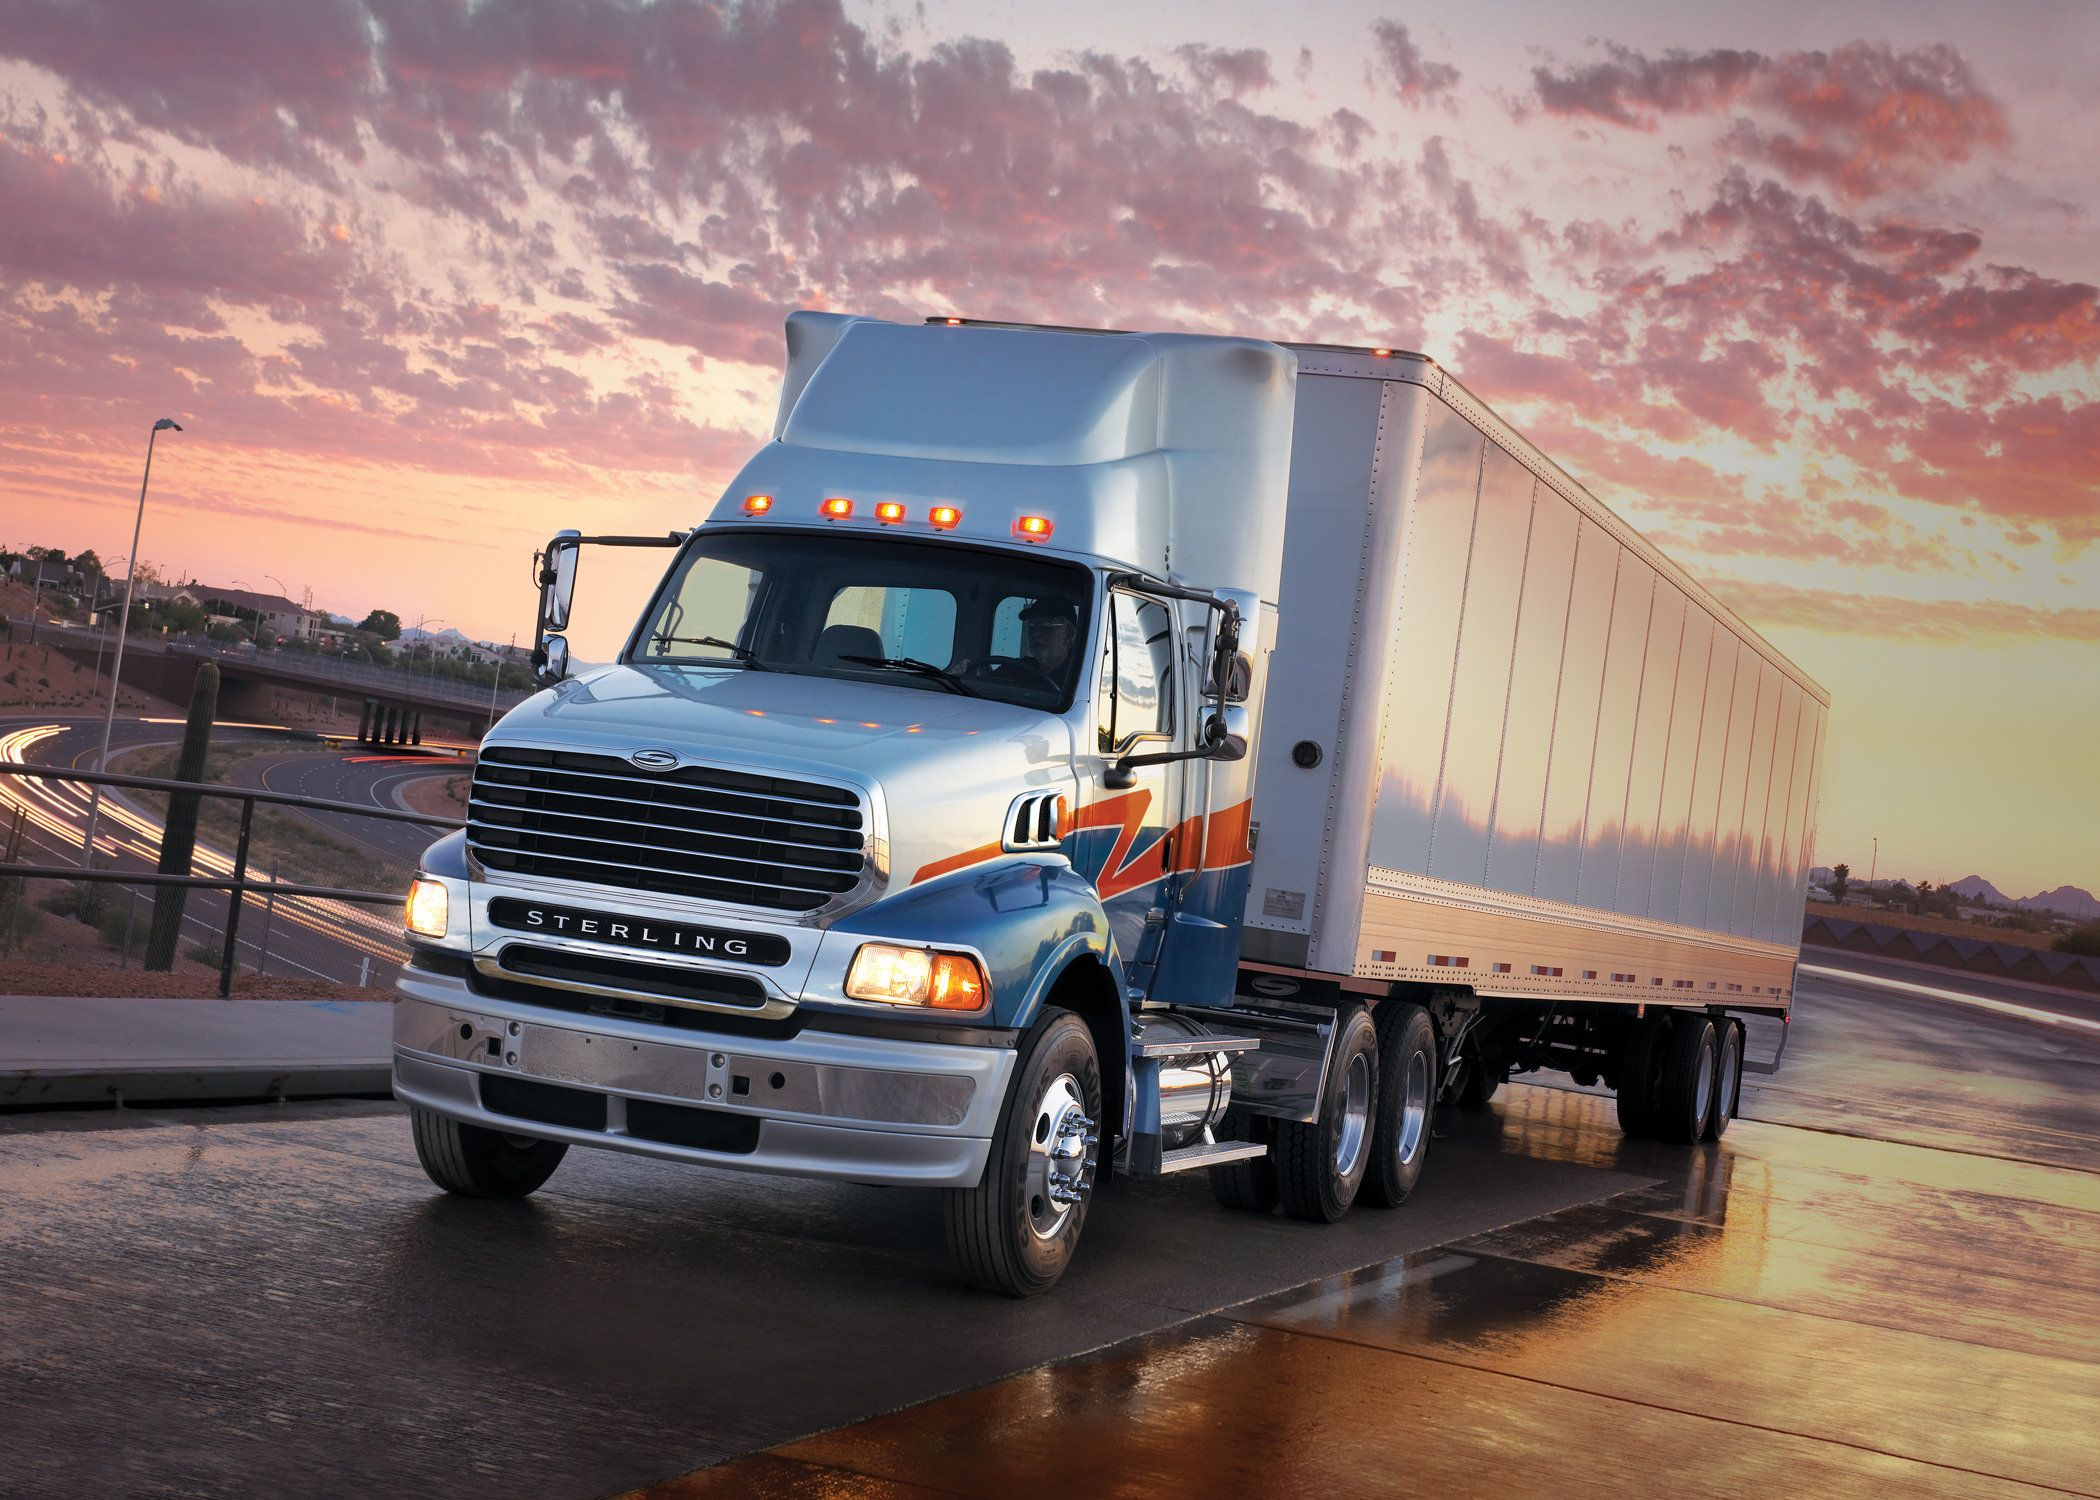 Big Truck Pictures Free Bigtruckpicturesfree With Images Big